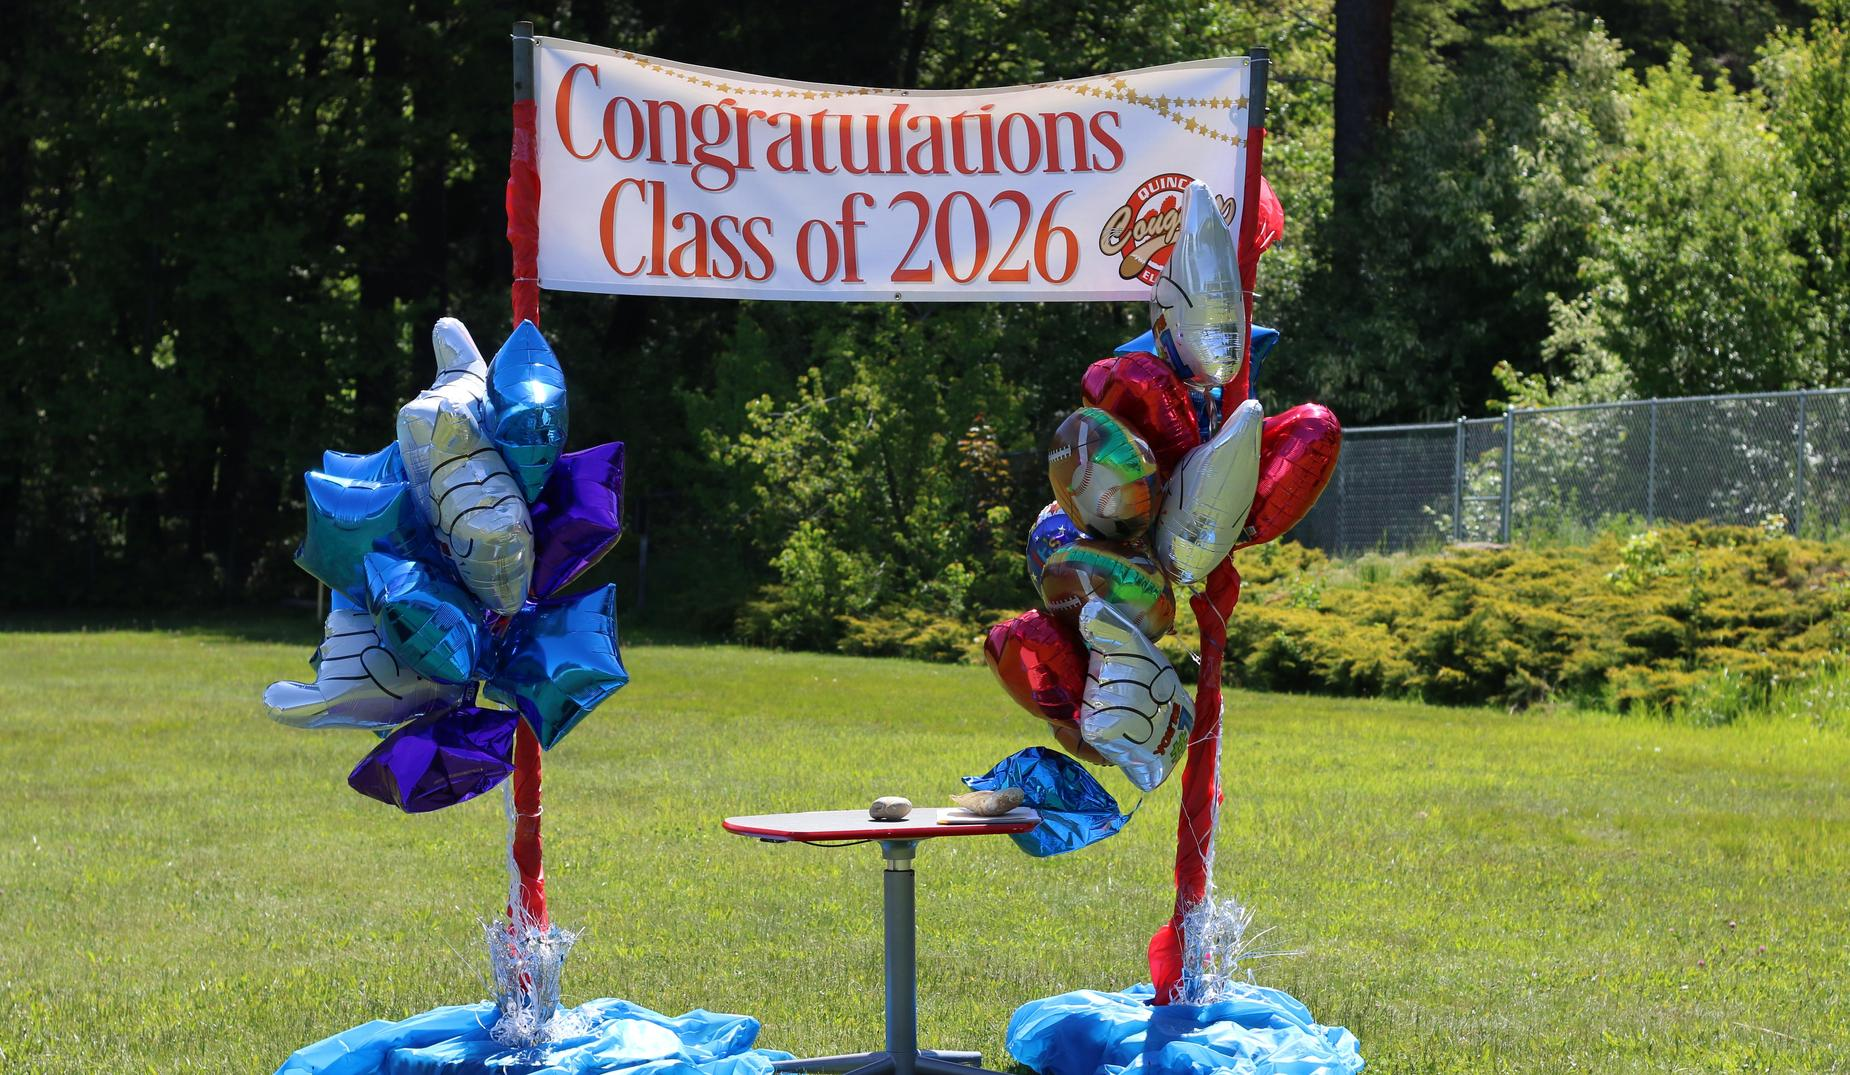 Congratulations to class of 2026